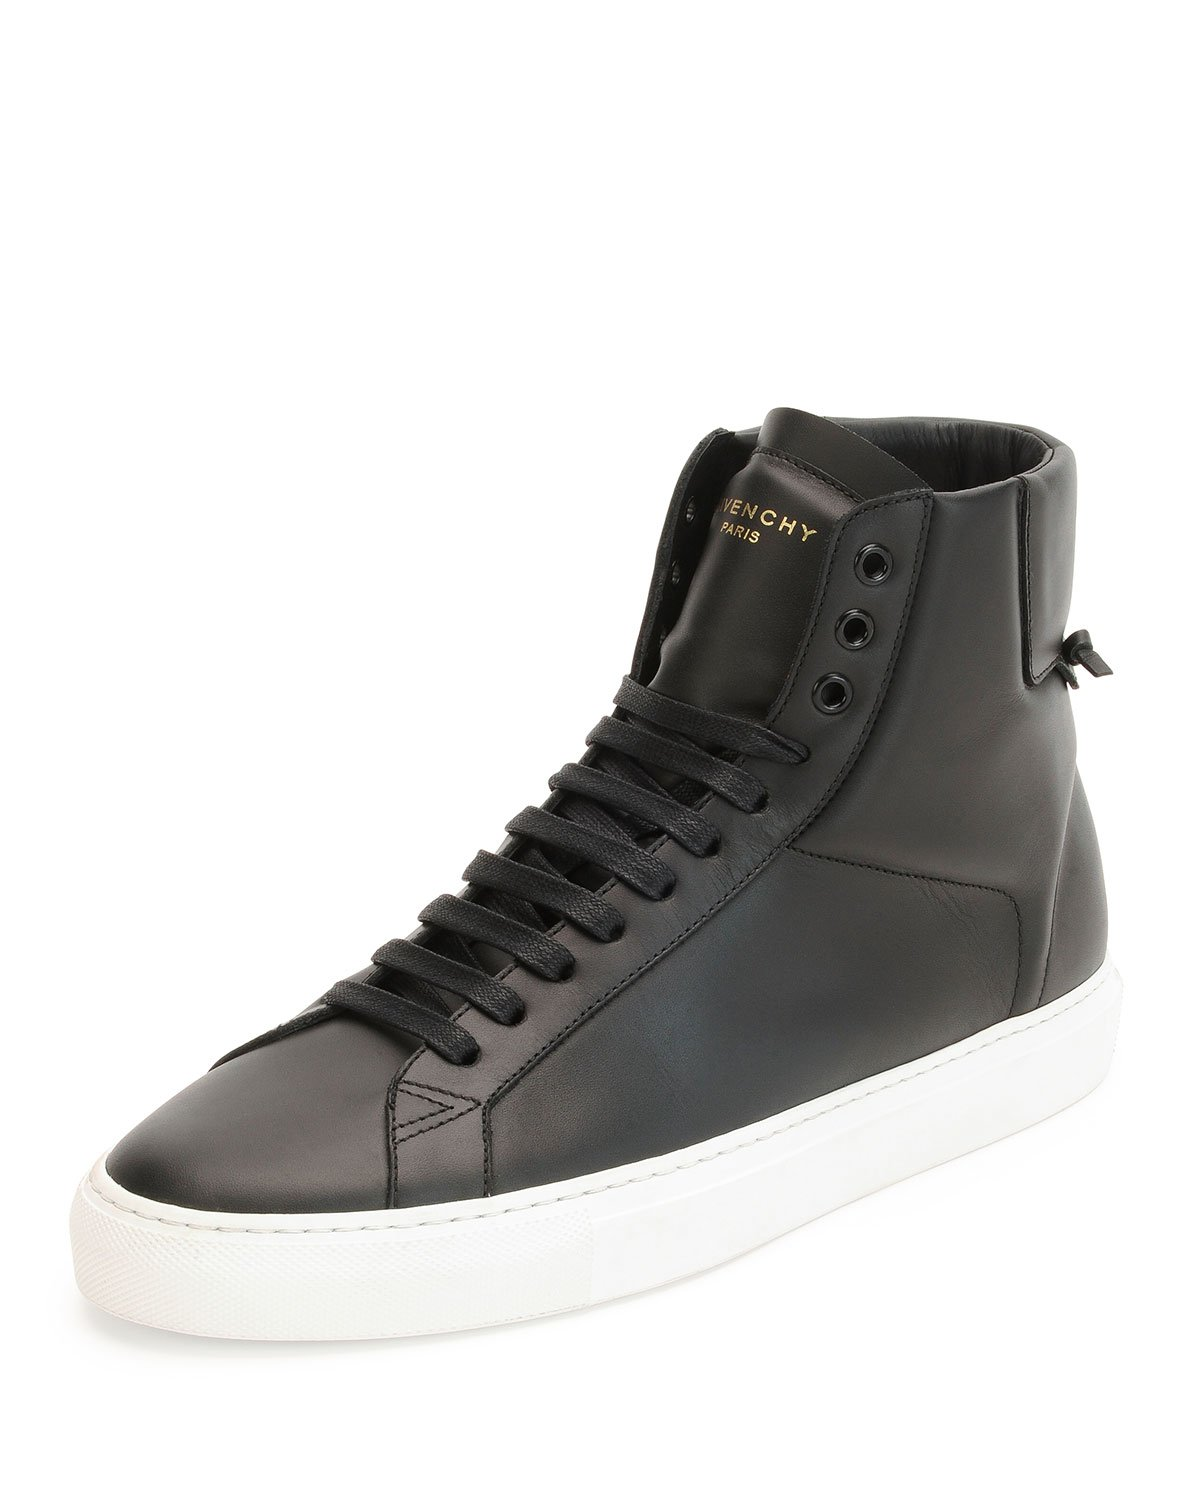 0cdc7ecc6fc8 givenchy-white-urban-street-high-top-sneaker-product-2-152356013-normal.jpeg